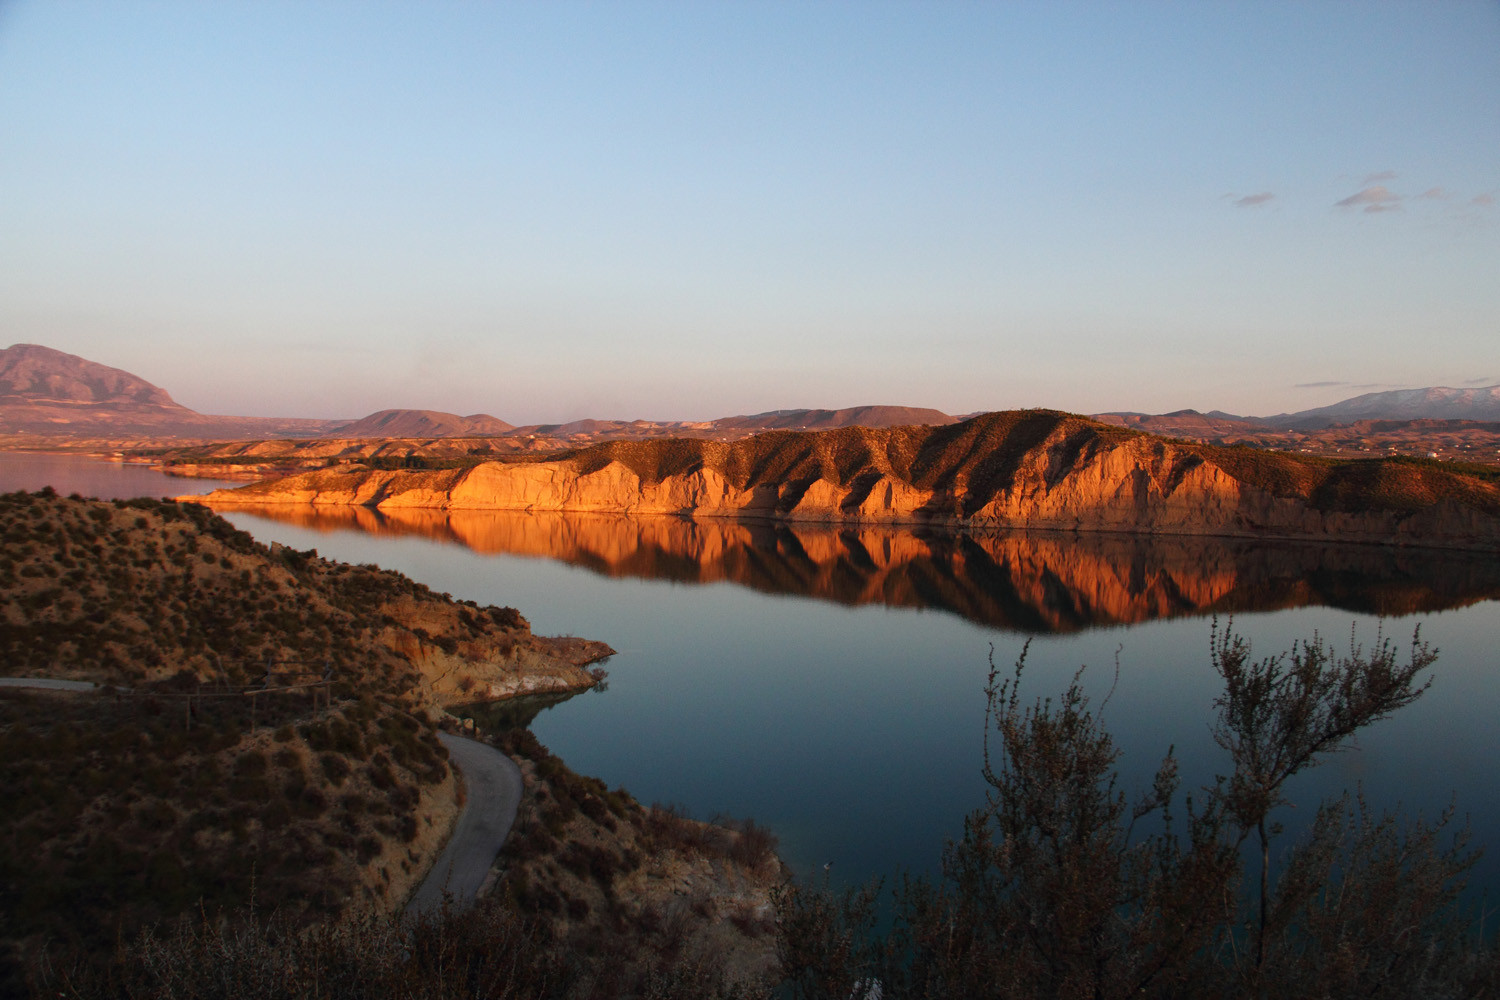 """Colored Rocks""- Embalse de Negratin, Granada - L02048"